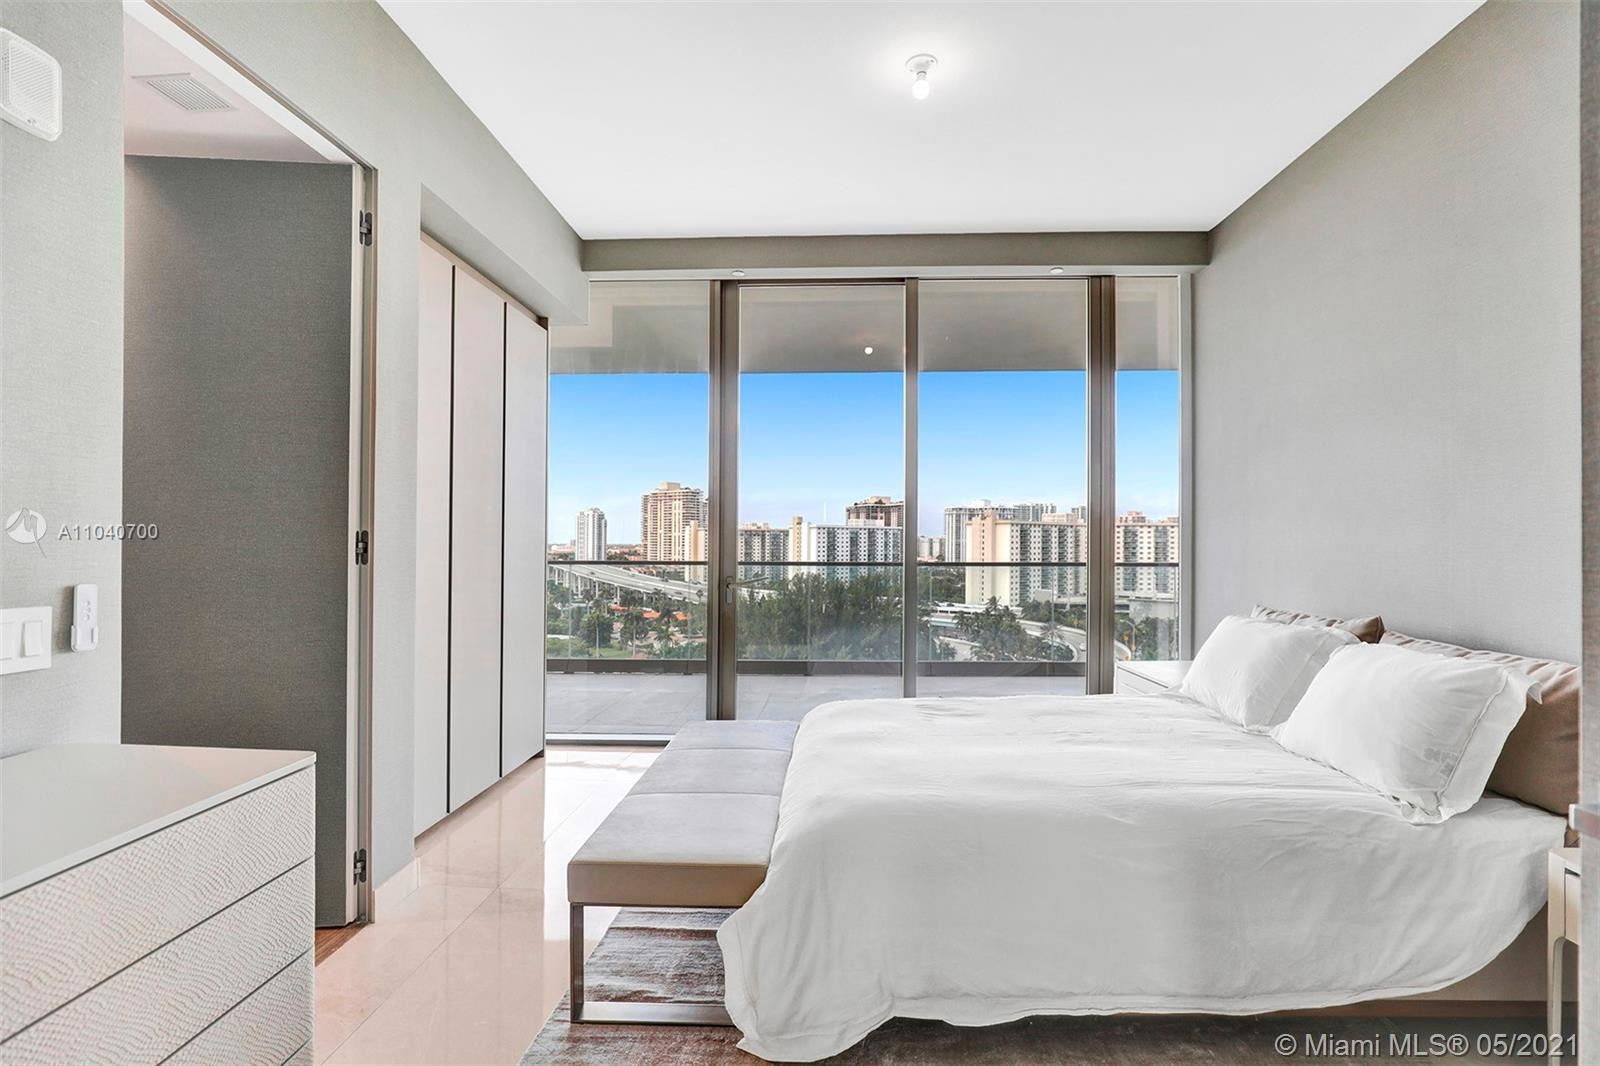 18975 Collins Ave #902 *FURNISHED*, Sunny Isles, FL 33160 - #: A11040700